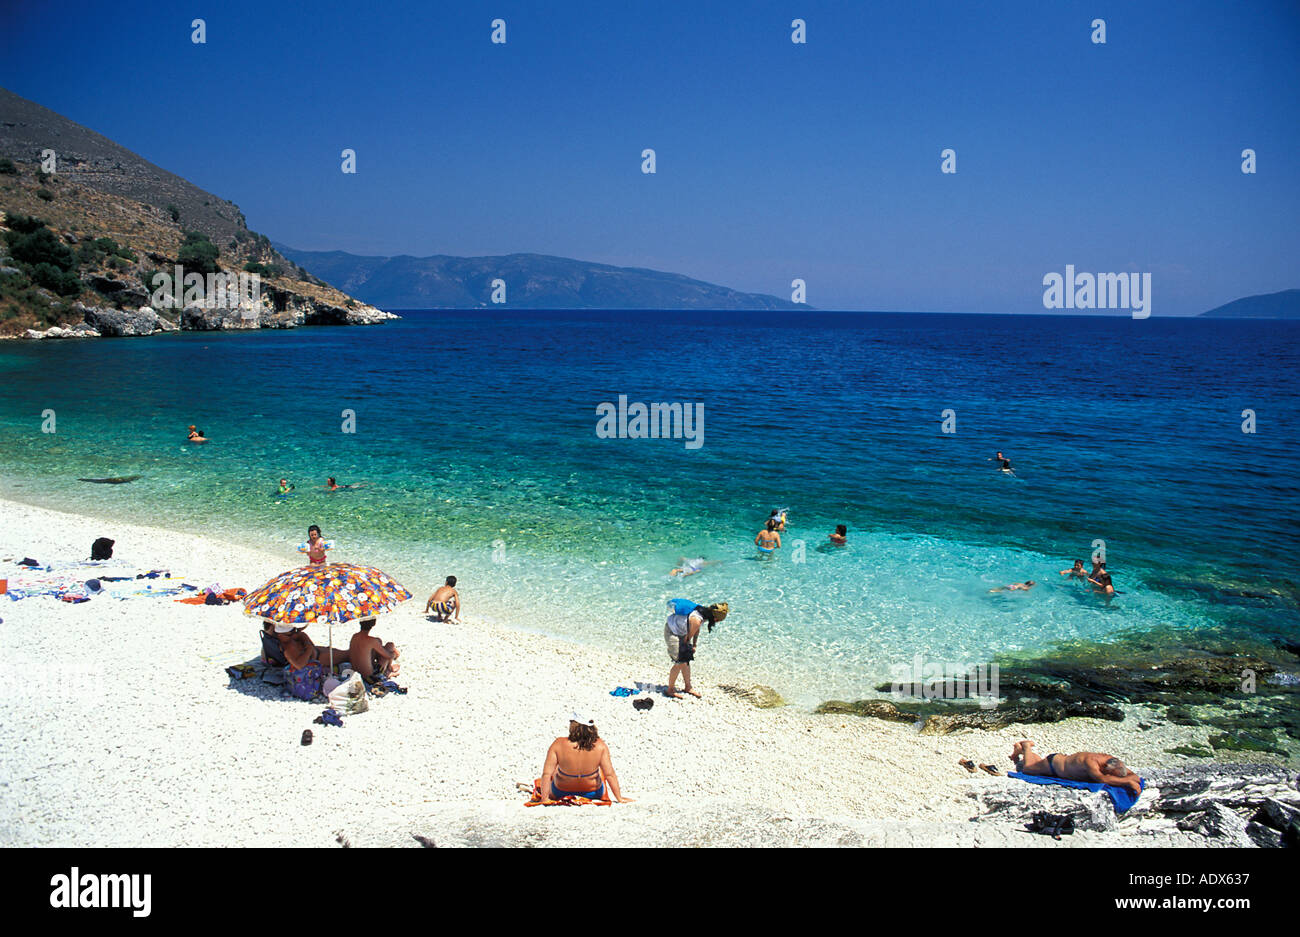 Relaxing on the beach at Aghia Efimia a picturesque seaside town Kefalonia Greece Mediterranean Sea - Stock Image